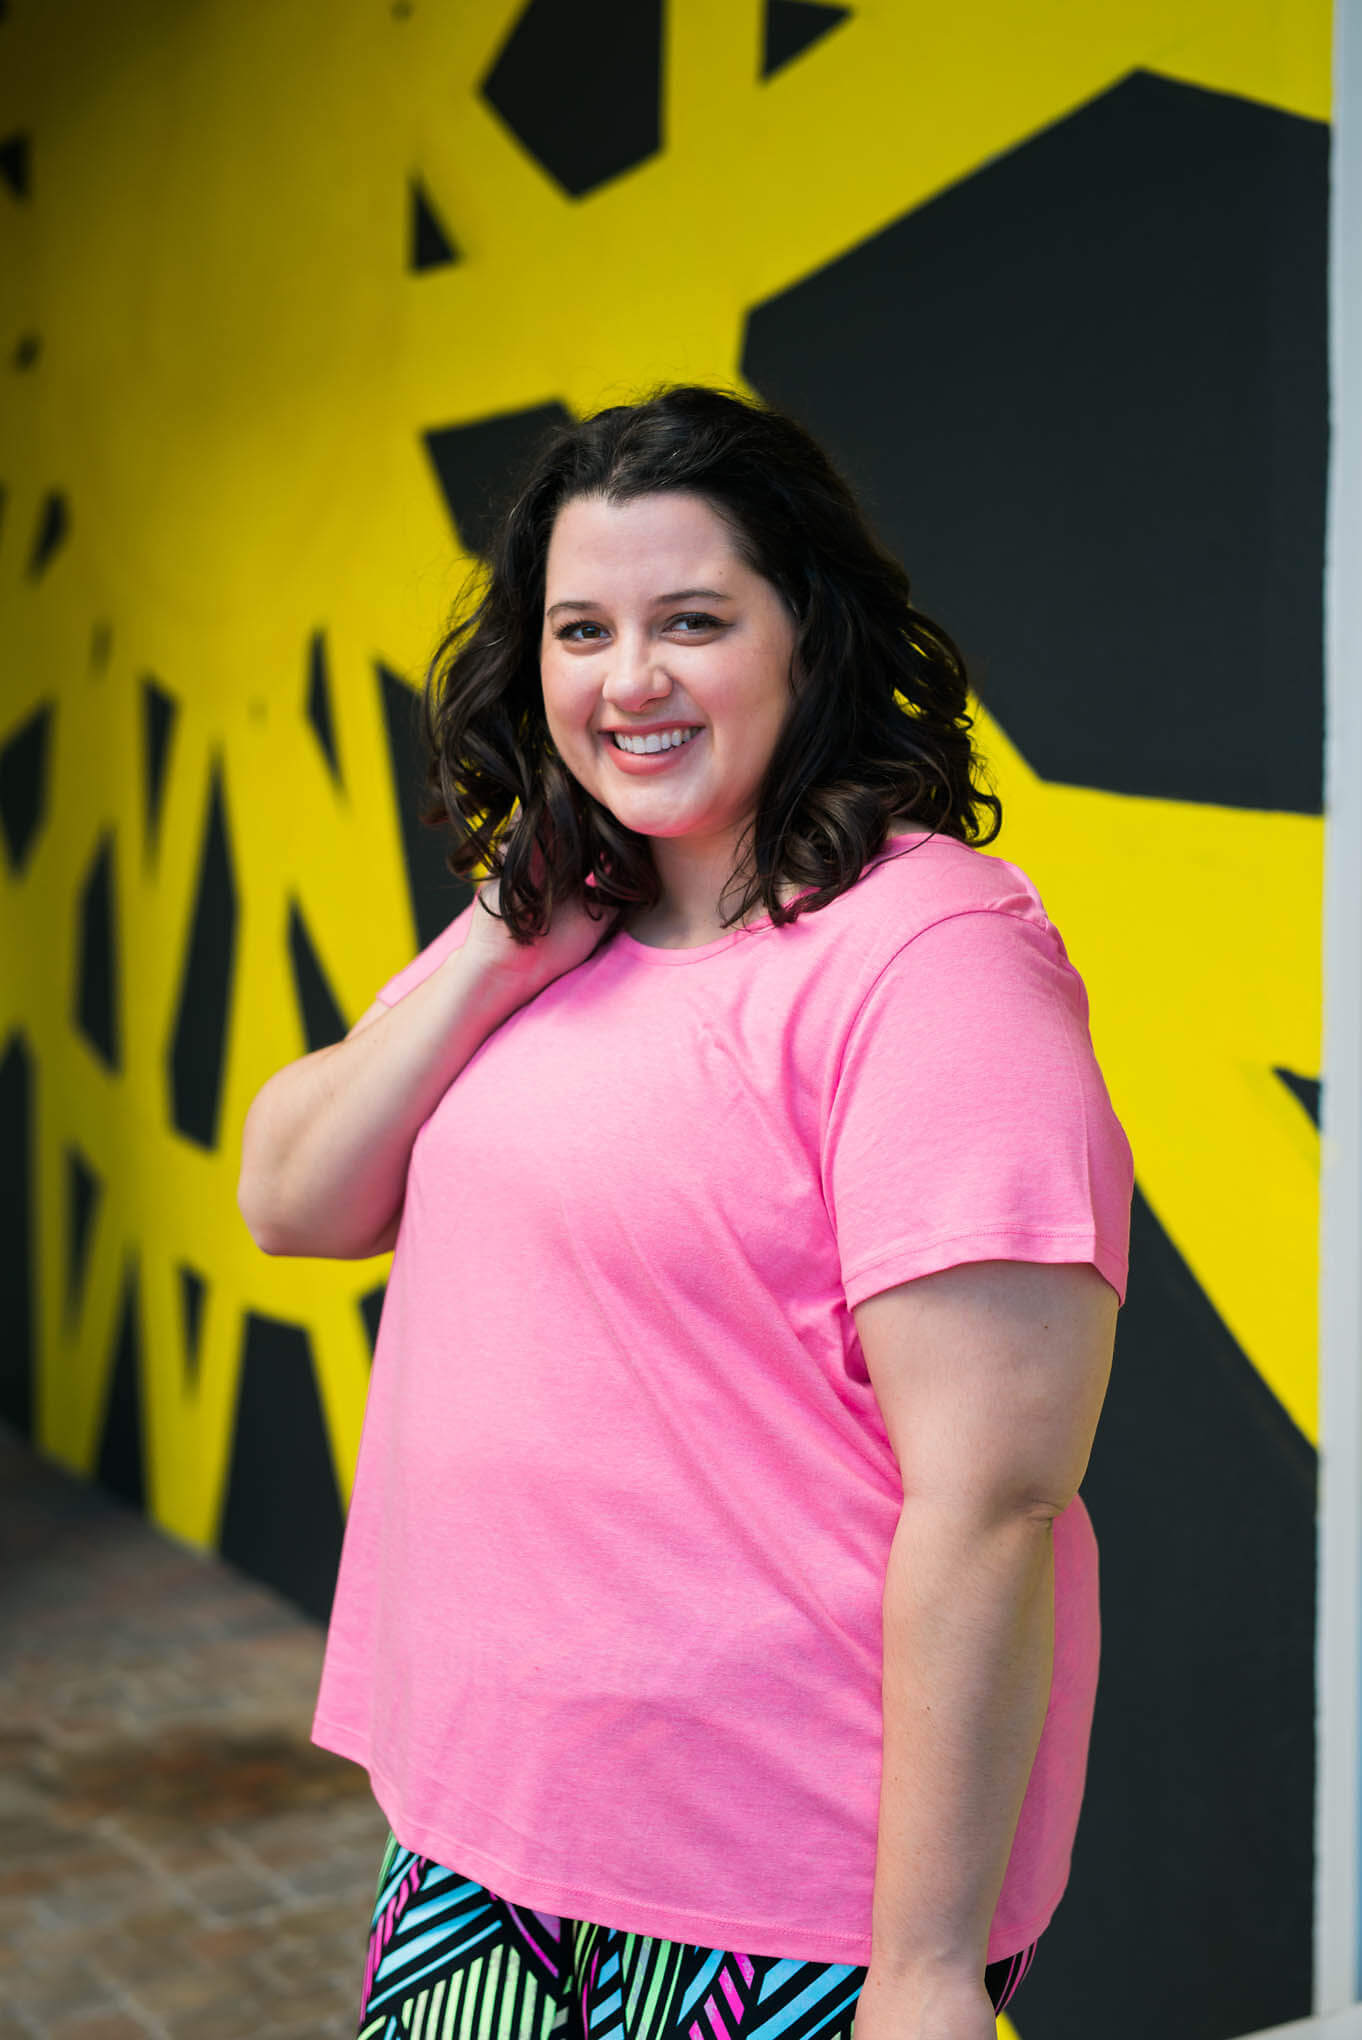 How to rock your first SoulCycle class, Something Gold, Something Blue fashion blog, How to survive first spin class, how to survive first SoulCycle class, Tips for spinning, tips for SoulCycle, Lane Bryant, Fabletics, Swell, Asics - How to Rock Your First SoulCycle Class by popular Houston blogger Something Gold, Something Blue